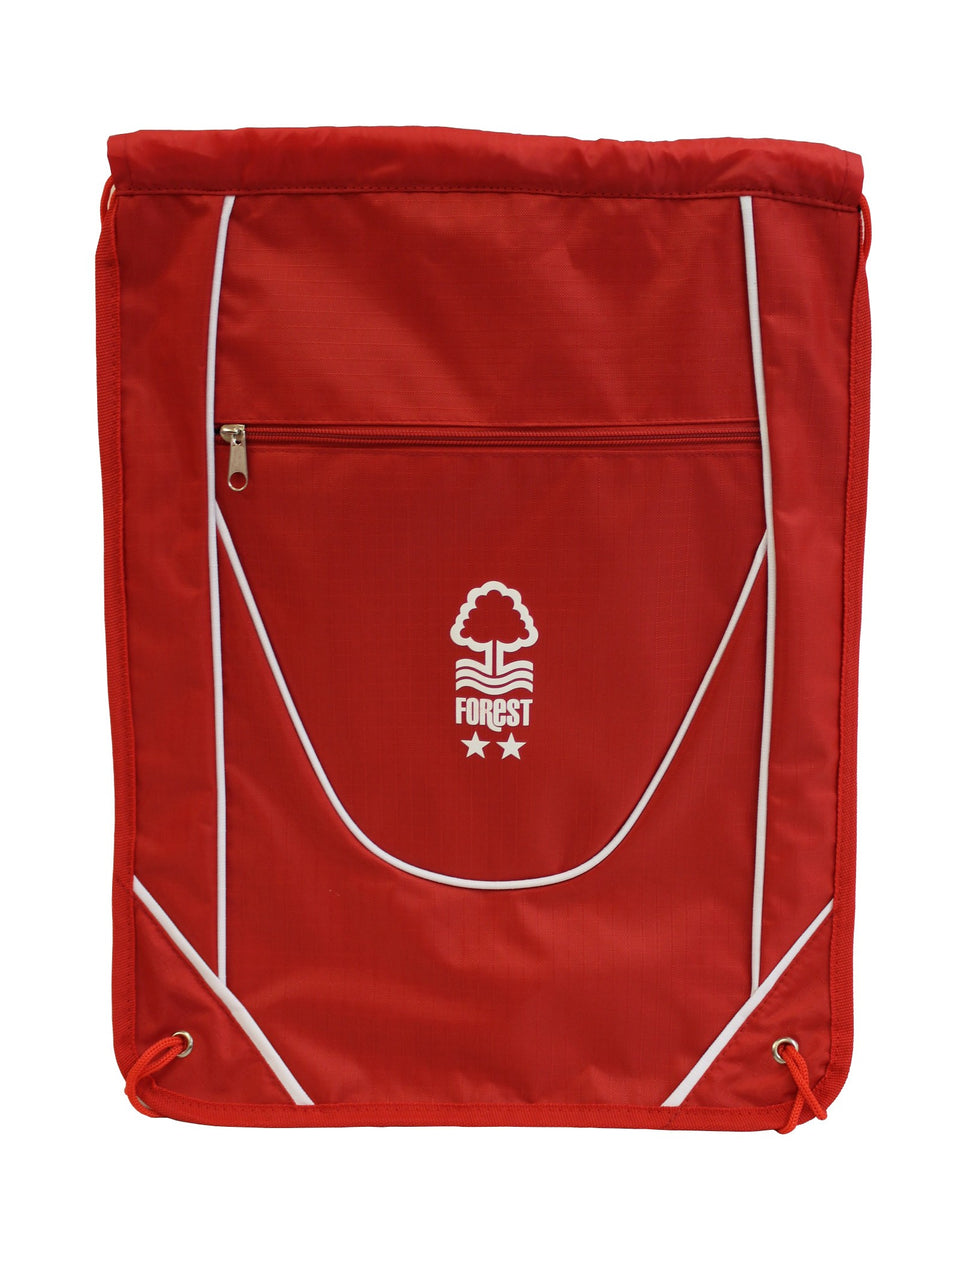 NFFC Red Core Gymbag